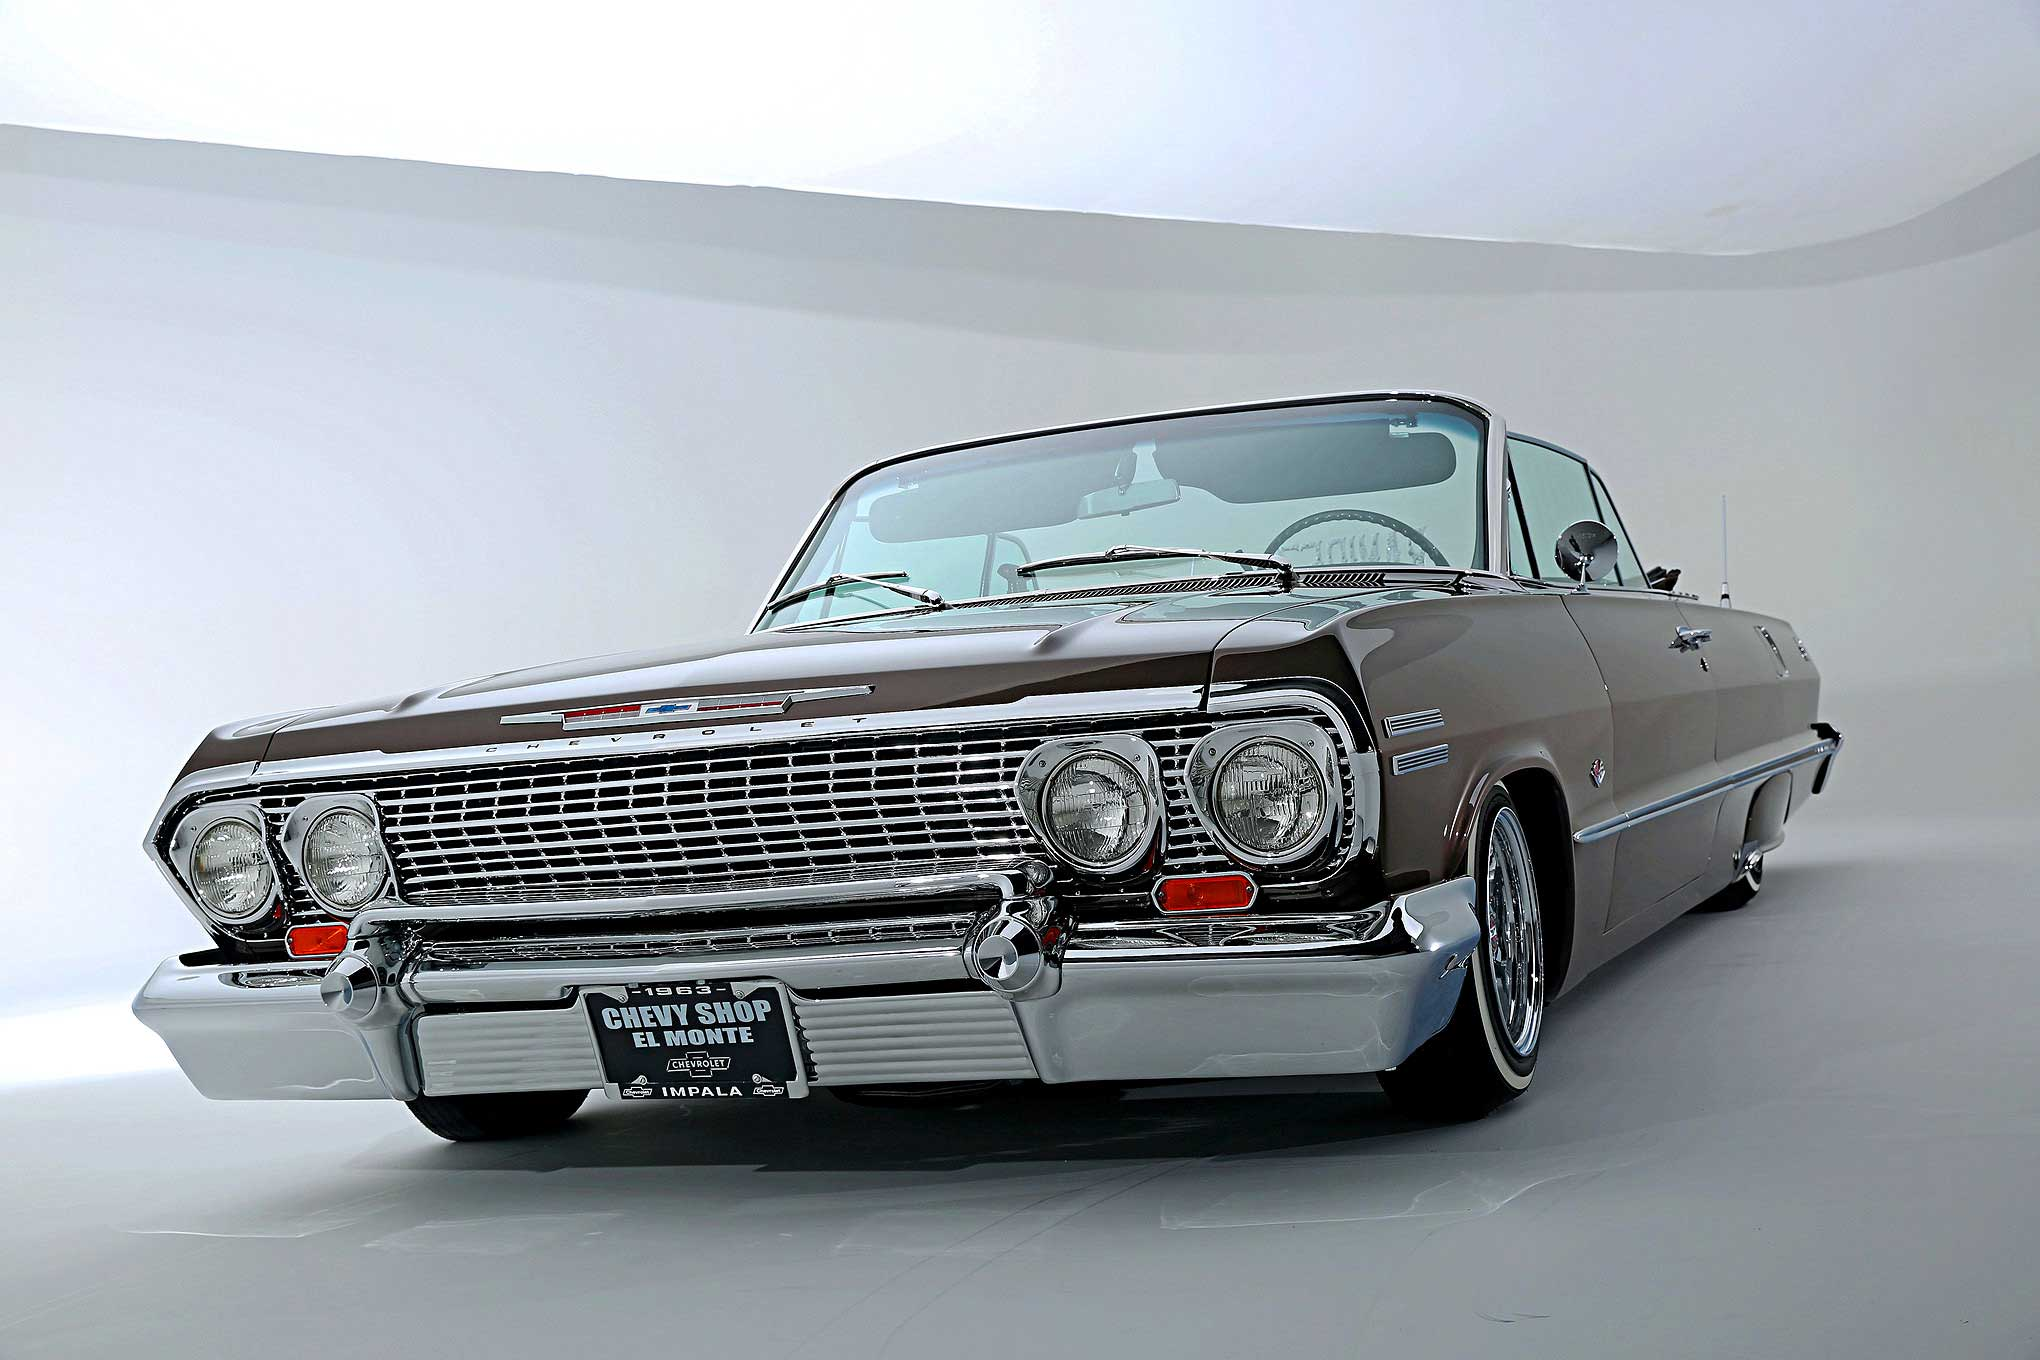 1963 Chevrolet Impala Convertible - Taking Flight